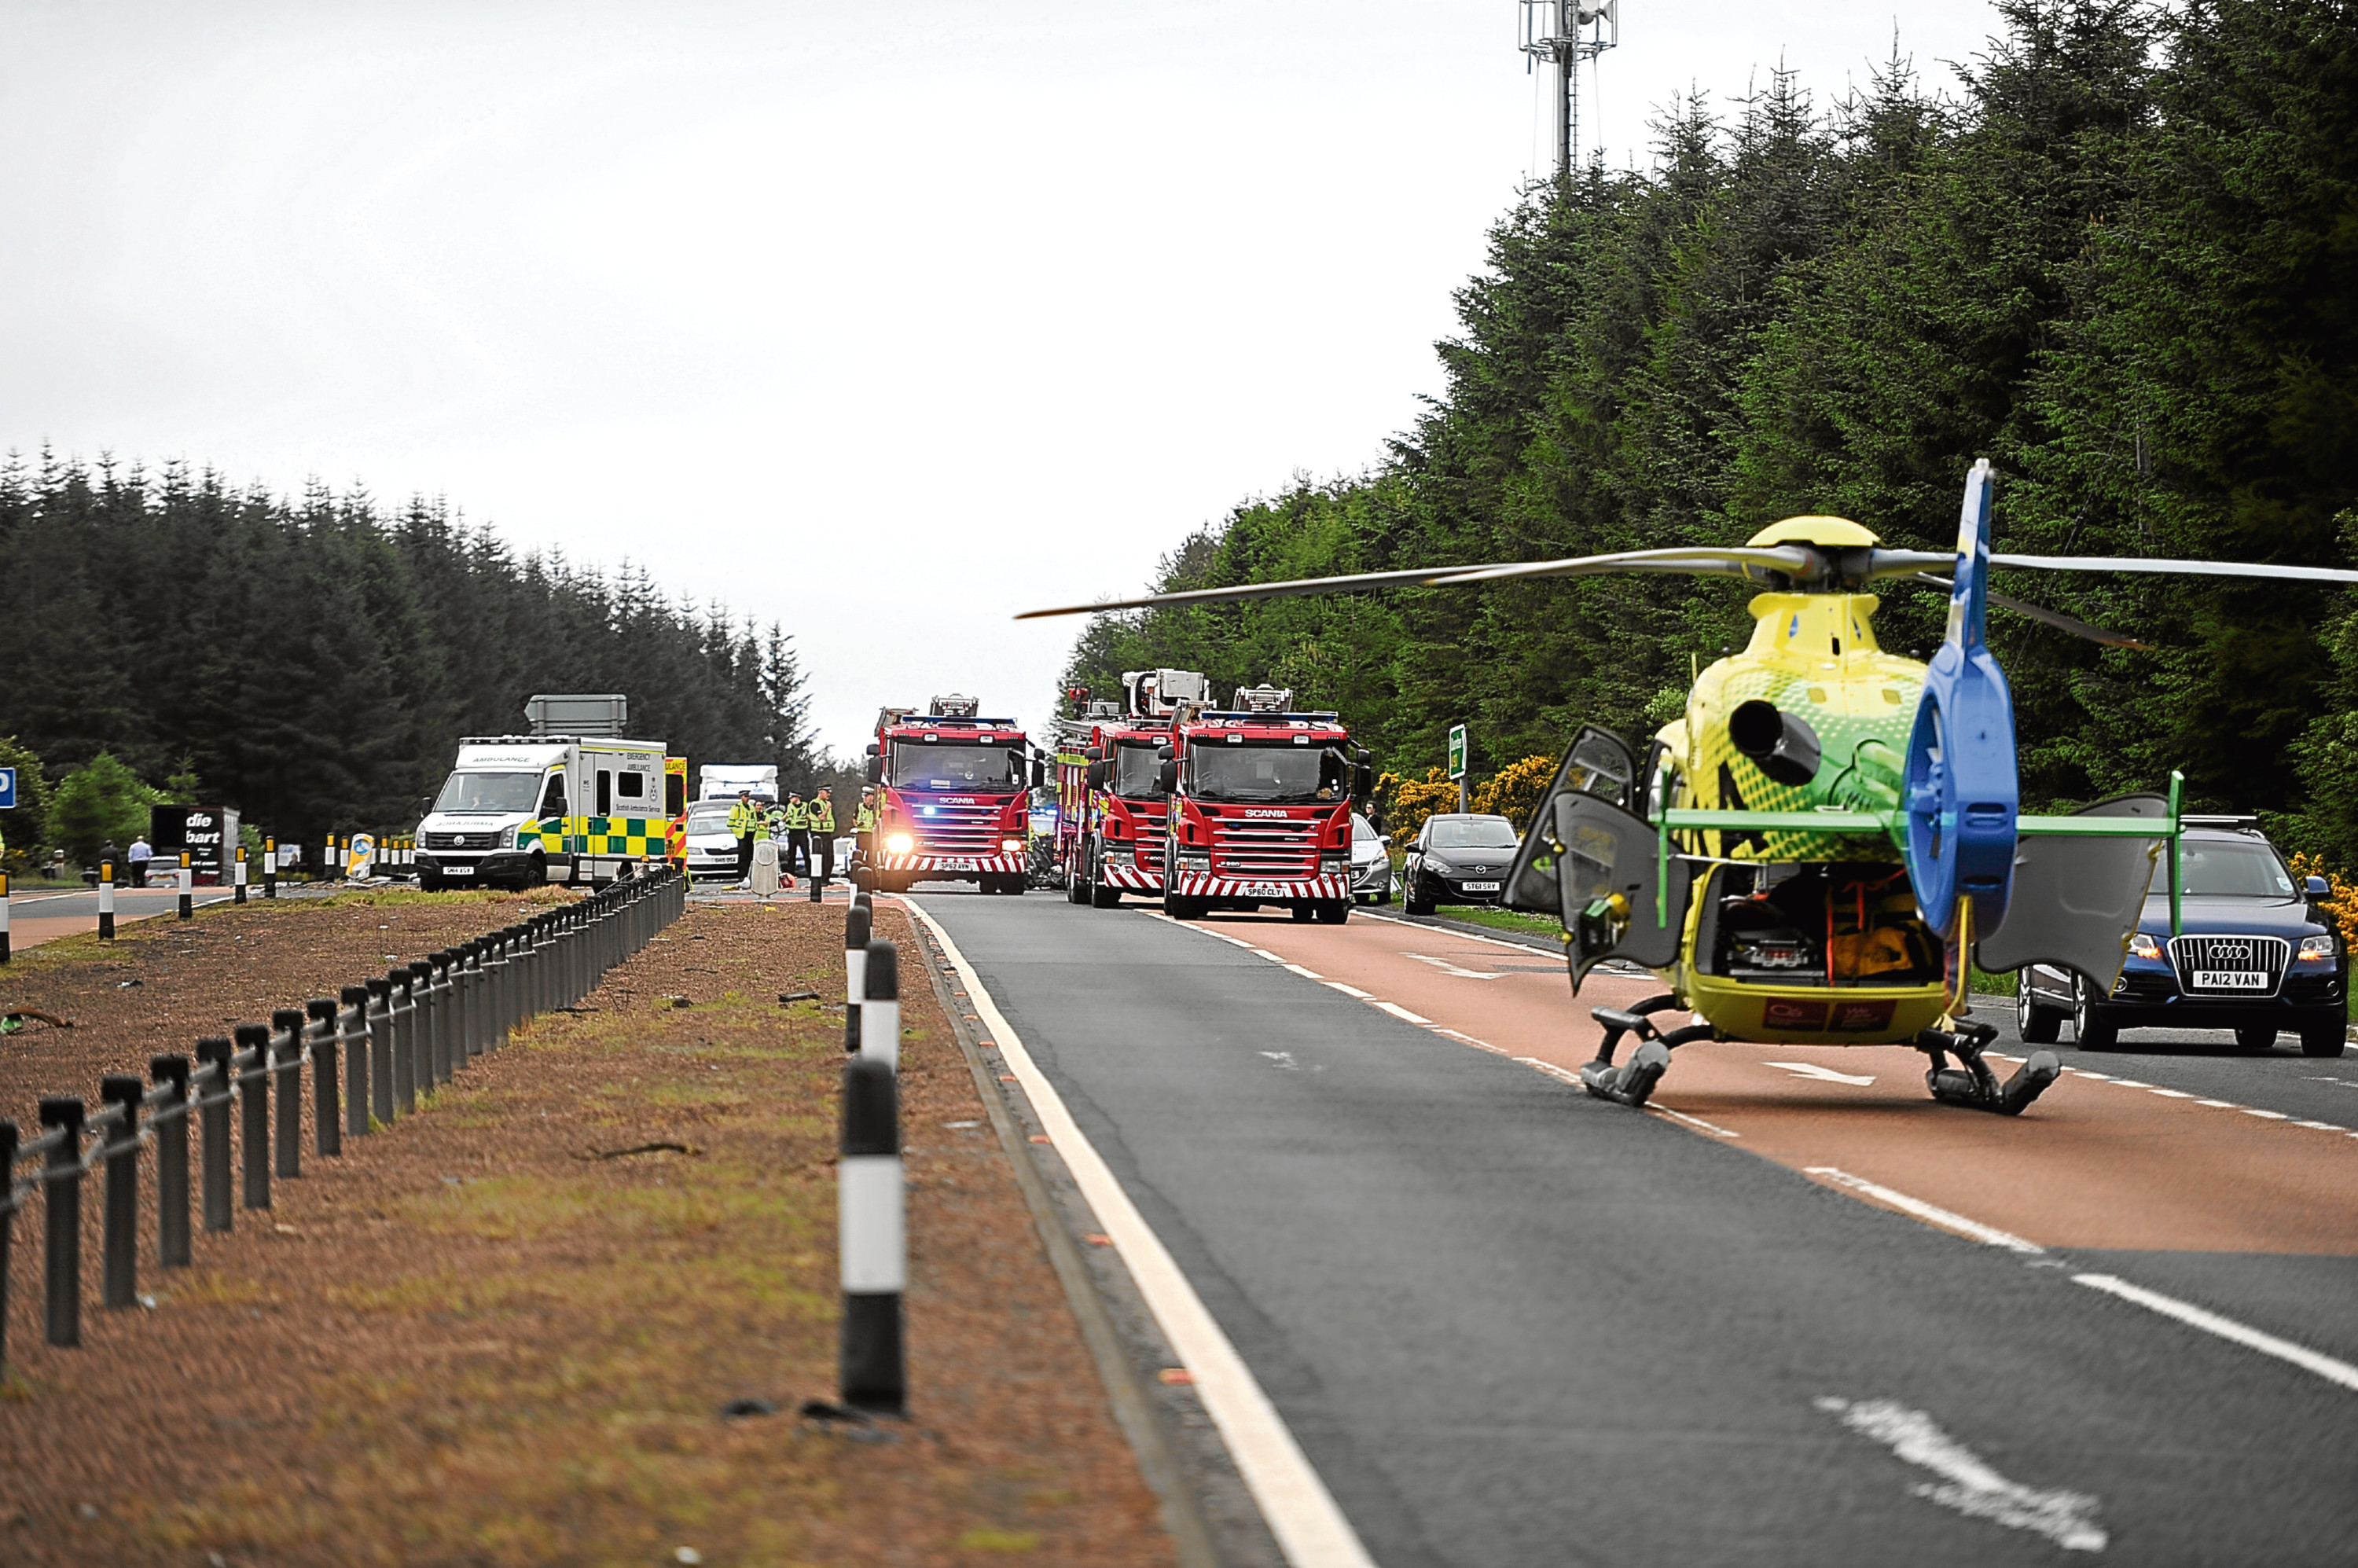 The scene of Monday's crash on the A90, which required attendance from the air ambulance.